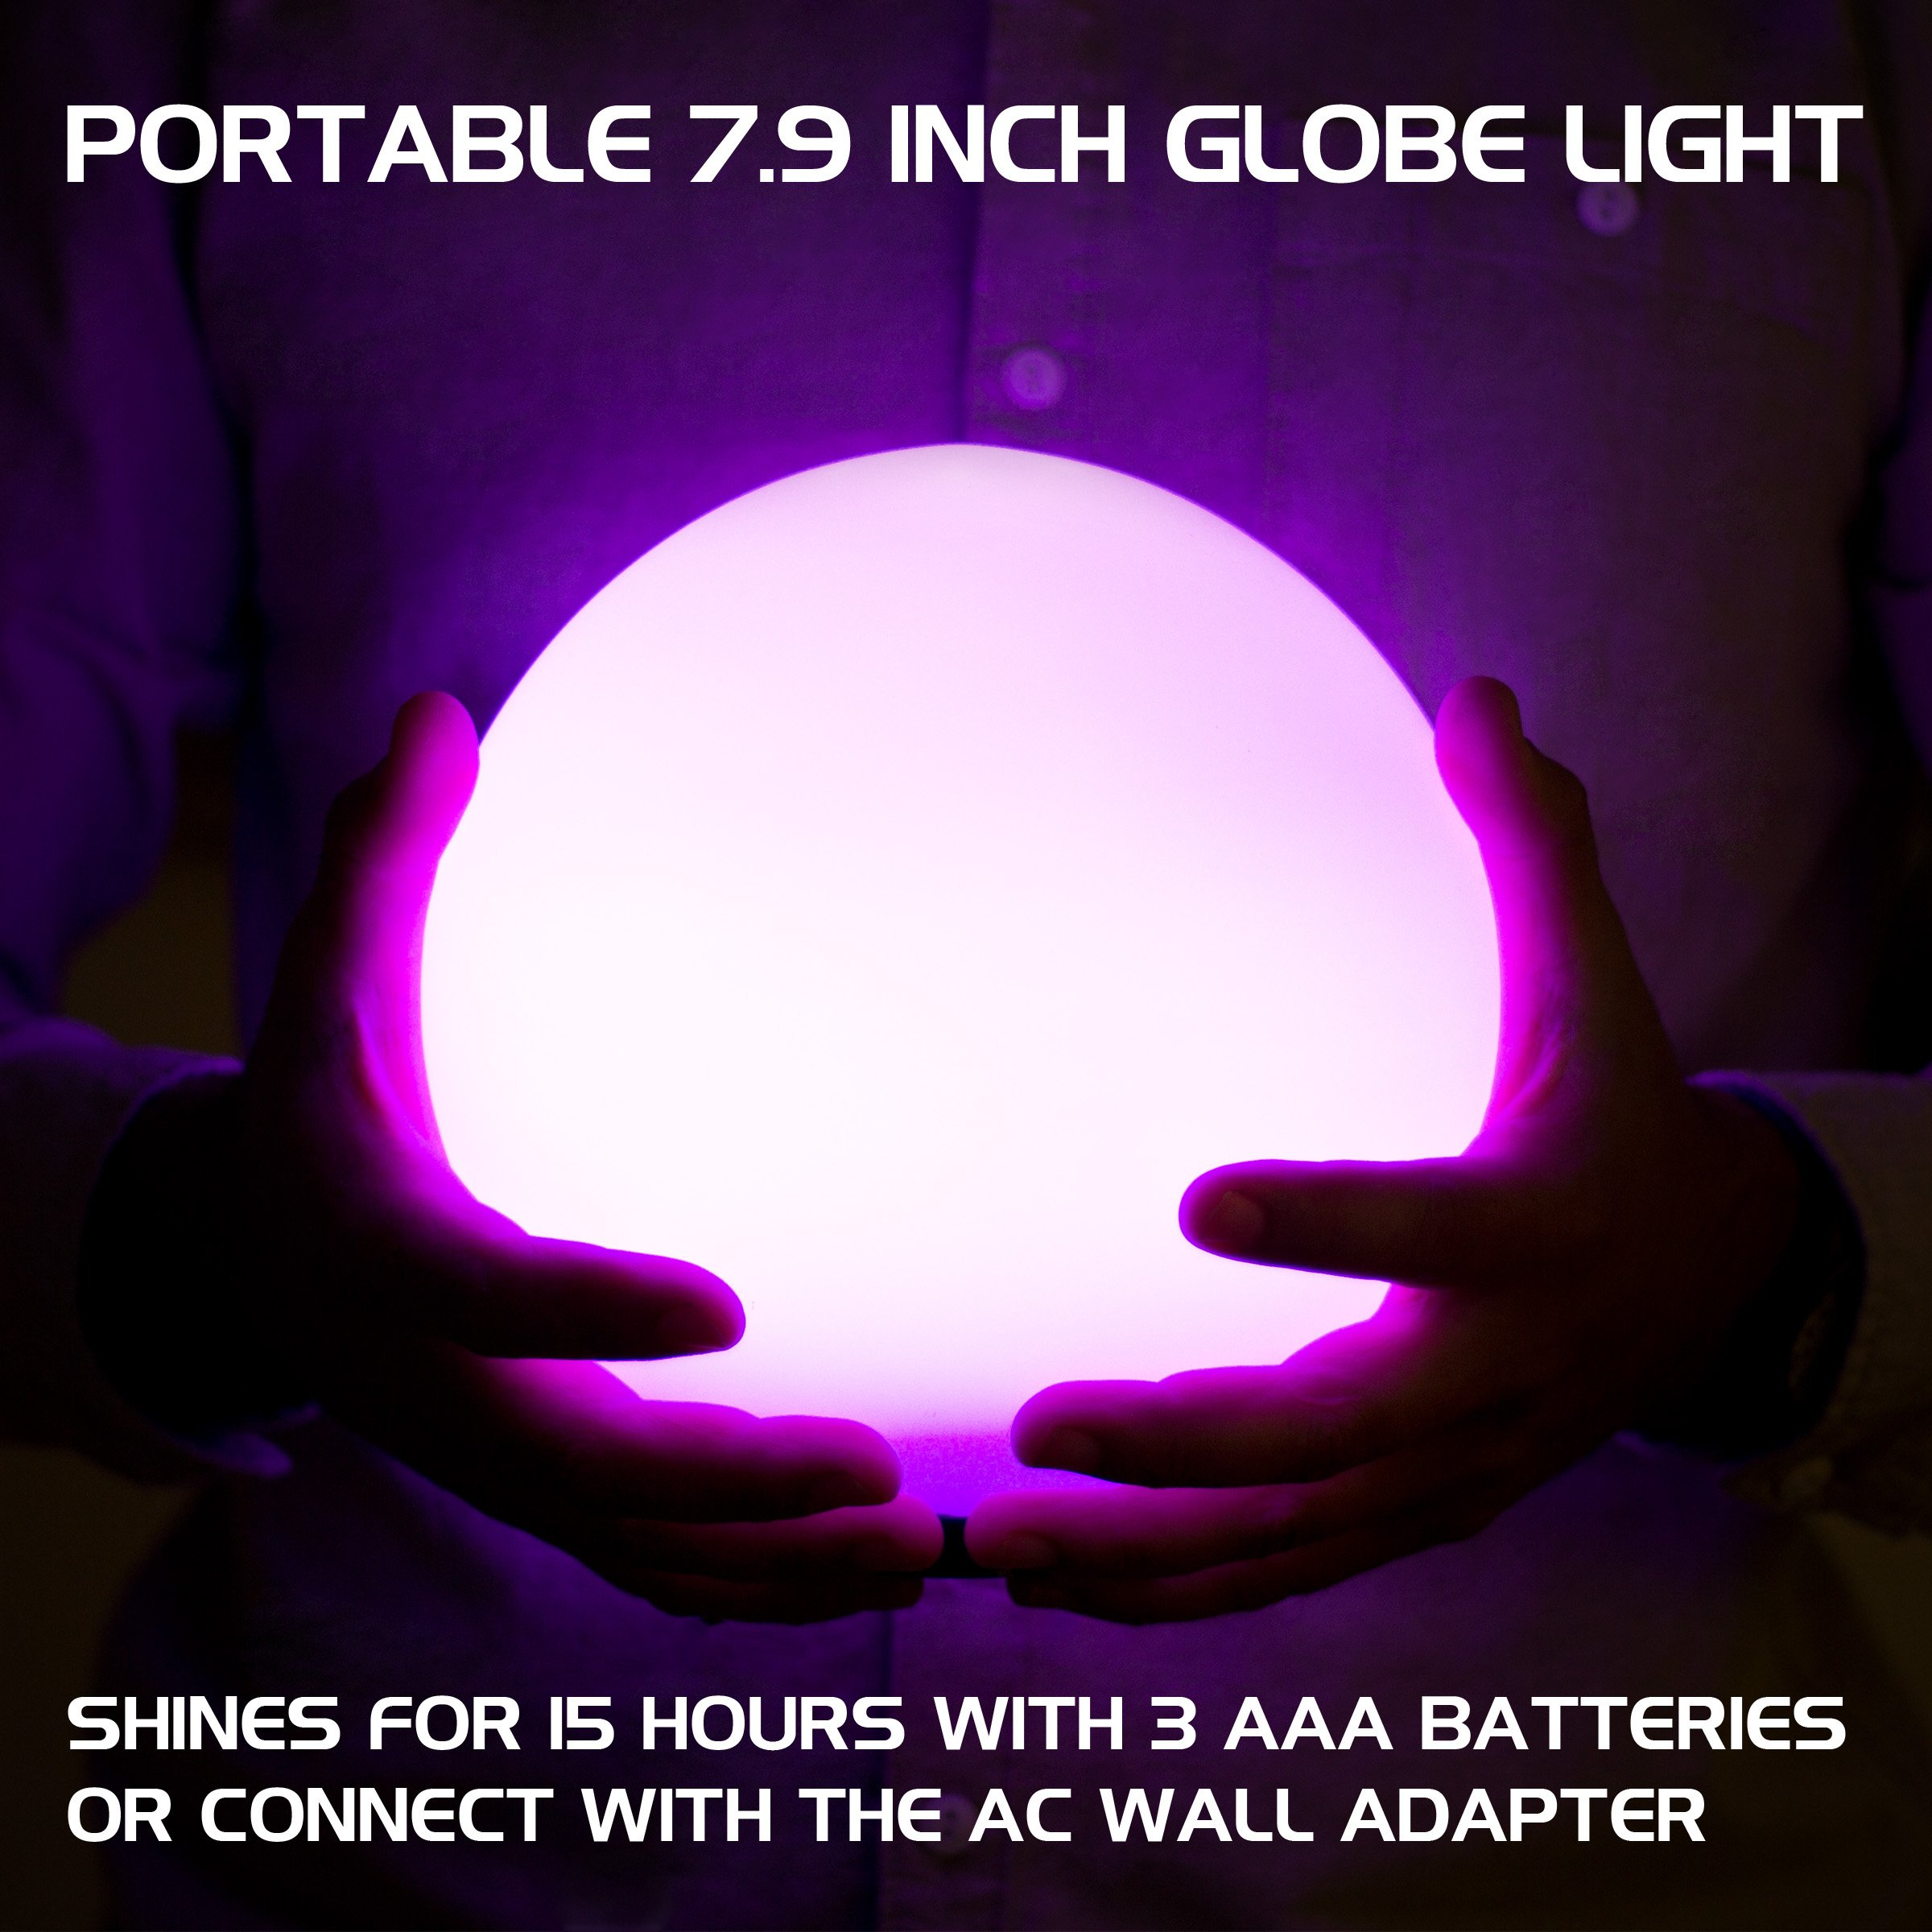 ENHANCE LED Globe Night Light Ambient Color Changing Premium Glass Mood Lamp with Remote Control - 7.9 inch 4 Lighting Modes & Battery or AC Adapter Power - Perfect for Children & Adults by ENHANCE (Image #3)